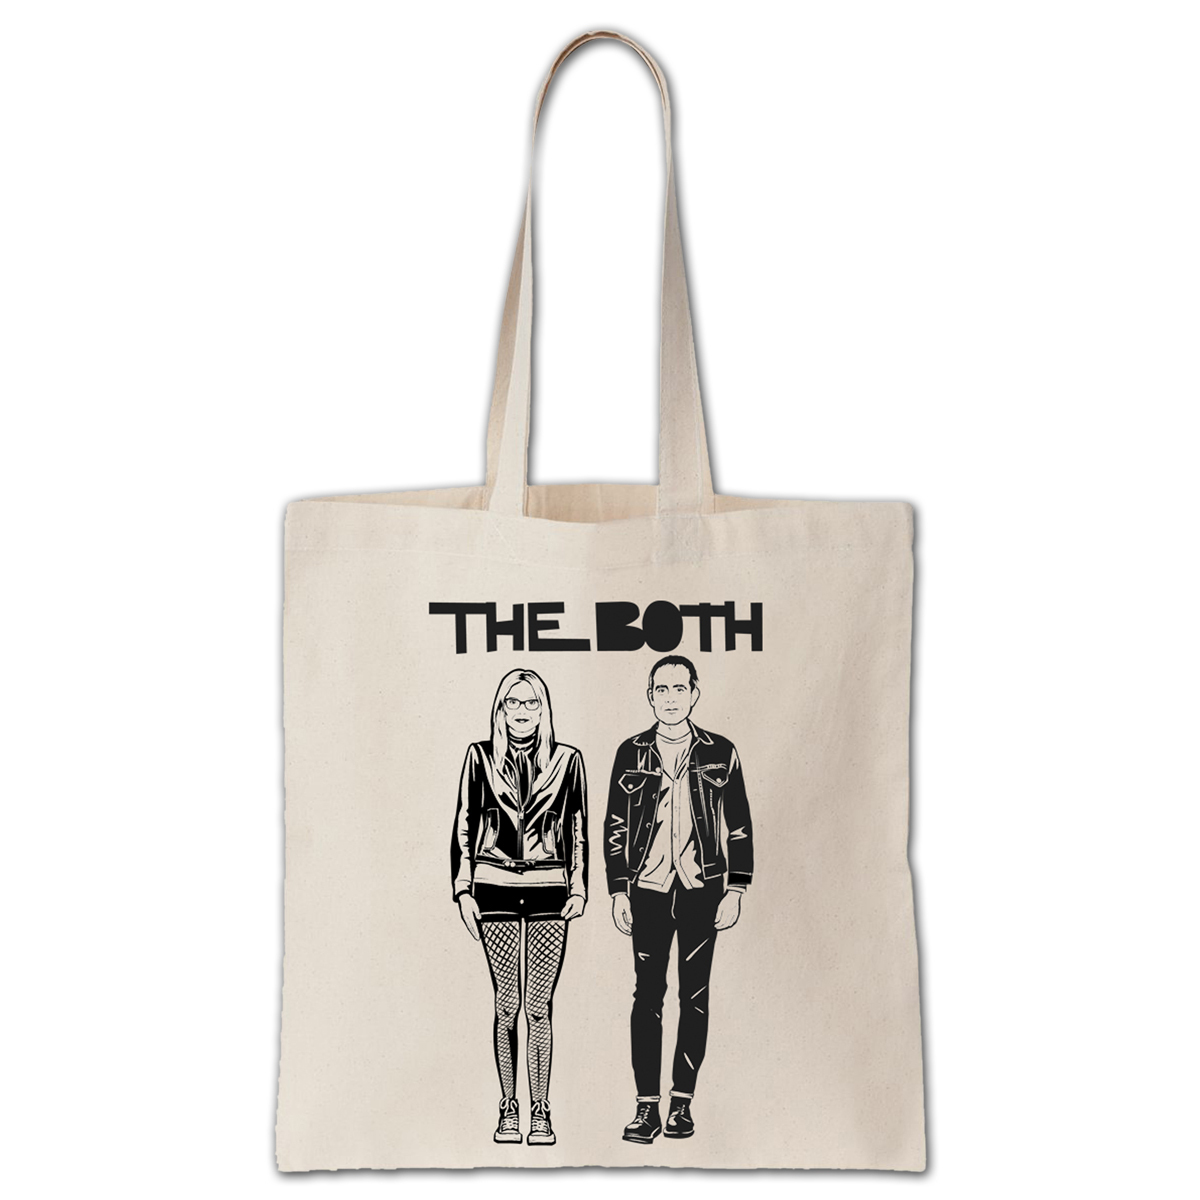 Aimee Mann and Ted Leo 'The Both' Tote